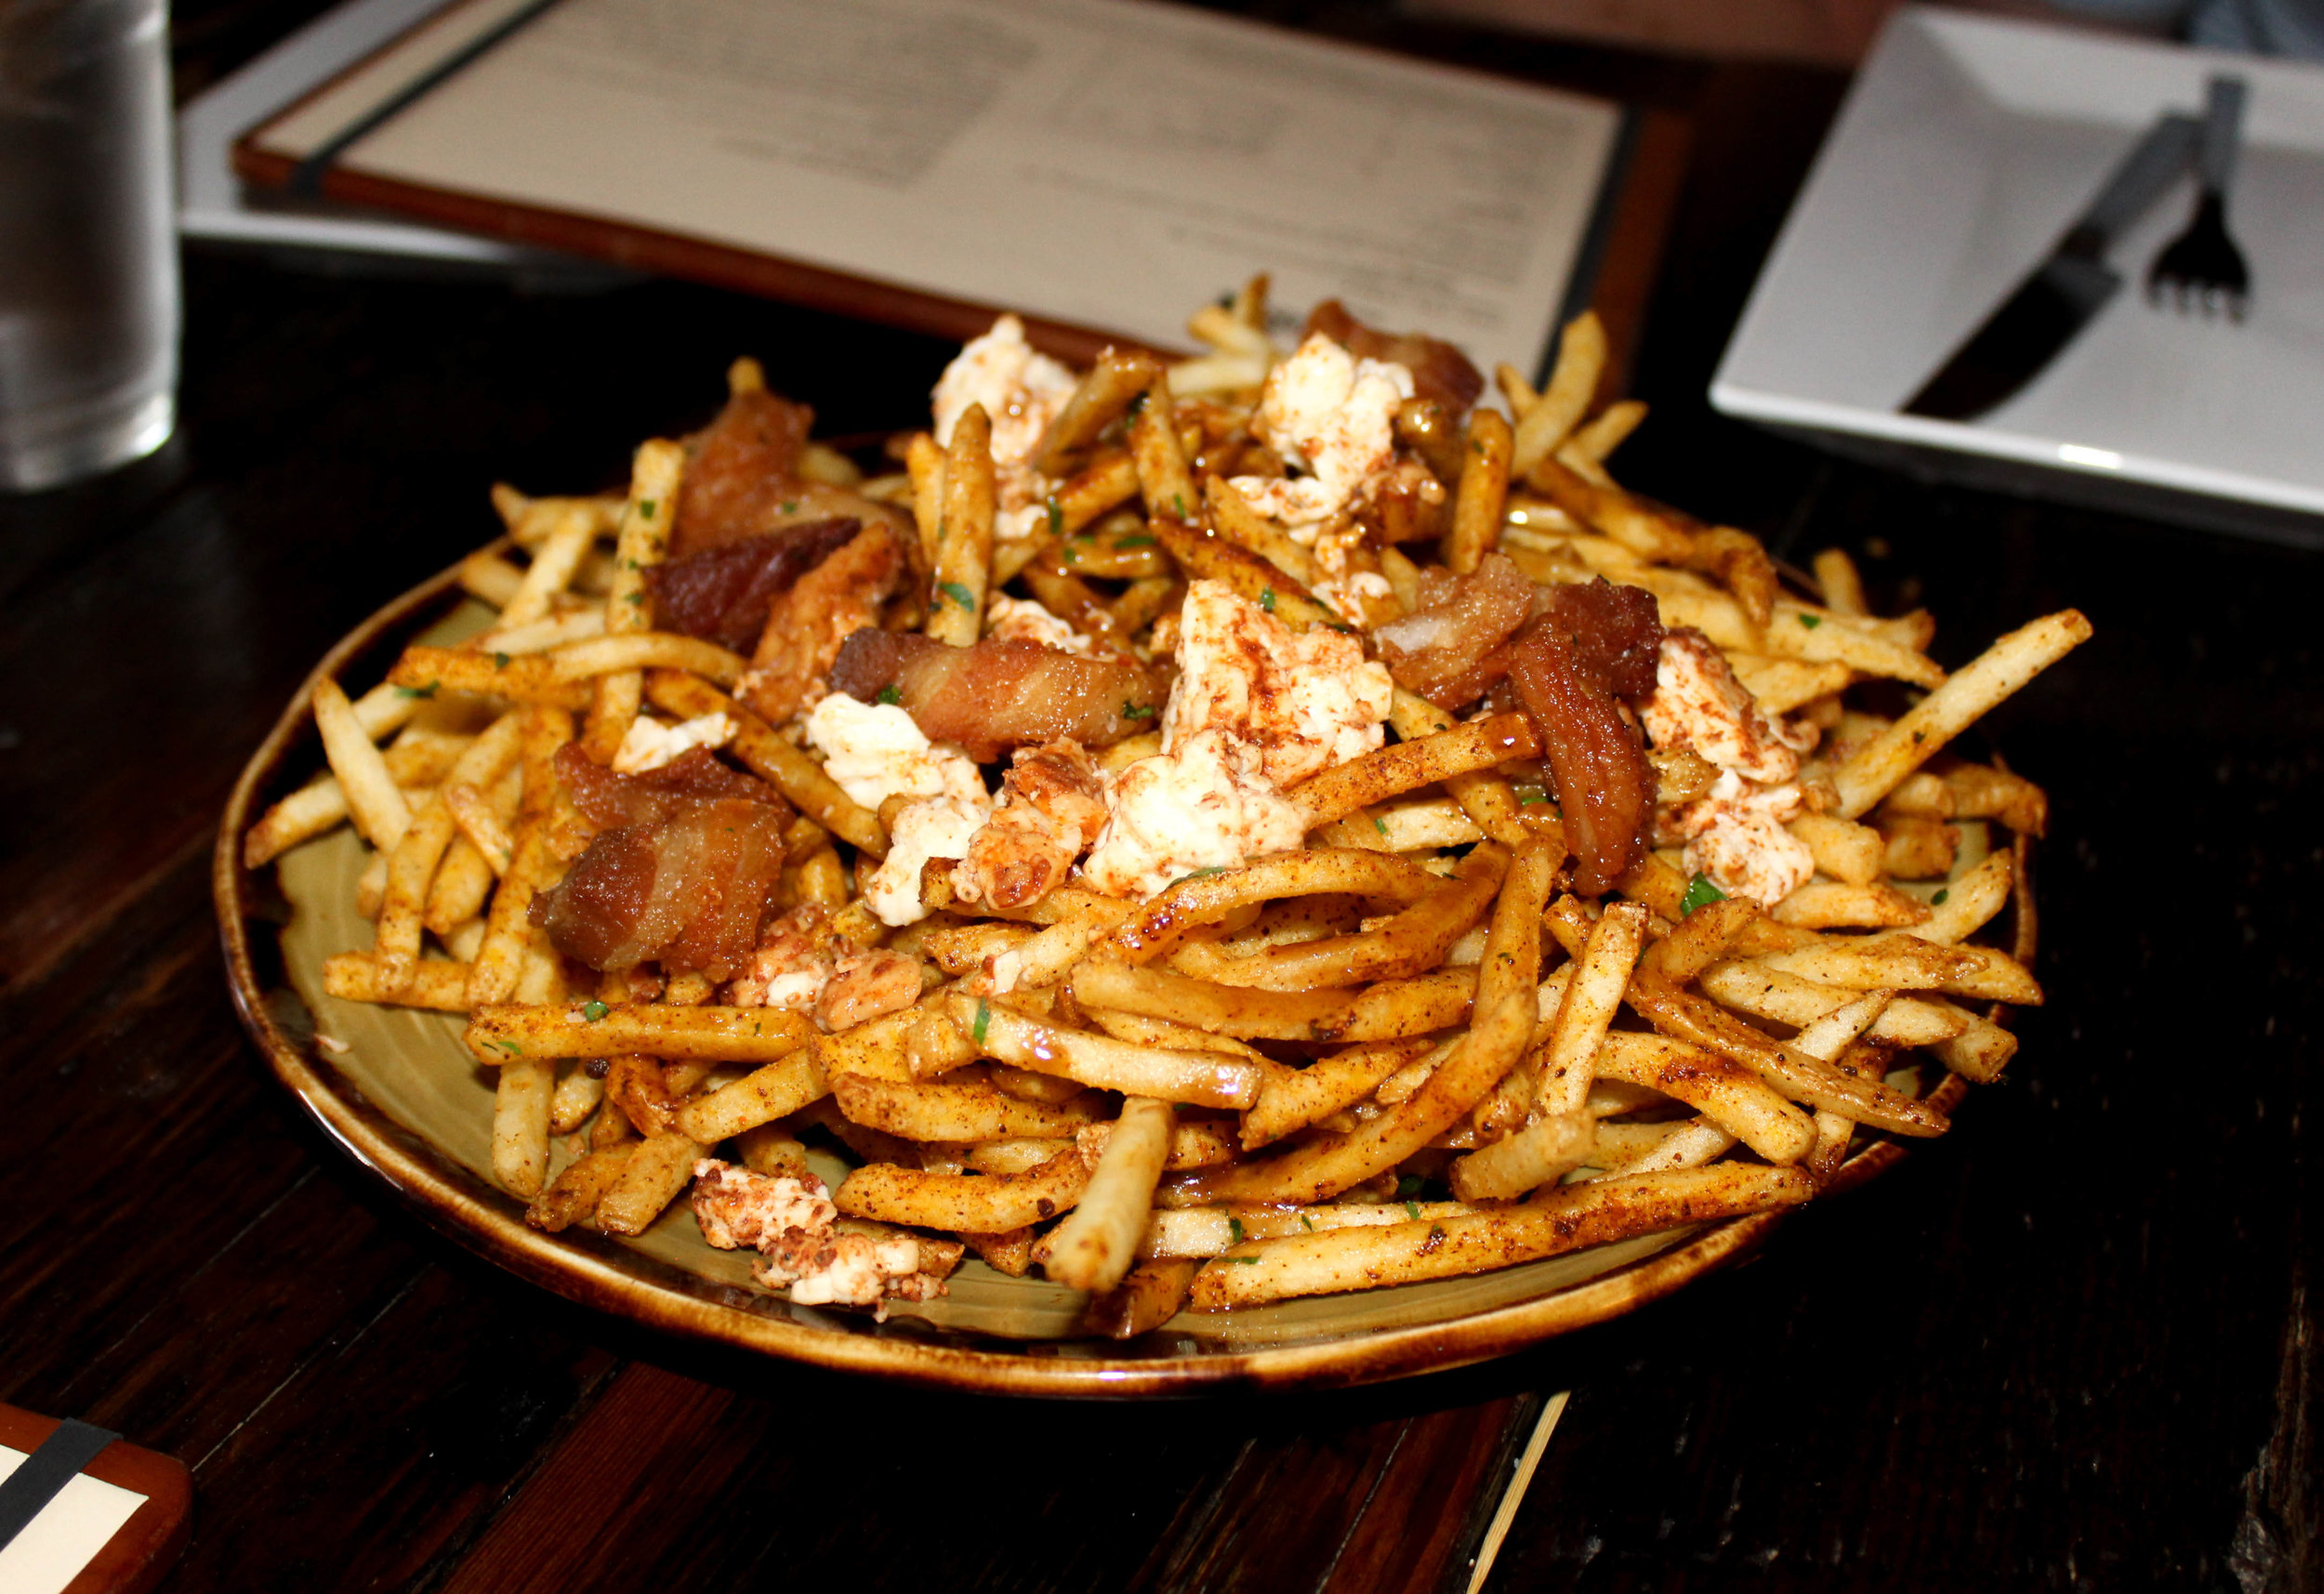 Still drooling over these fries...